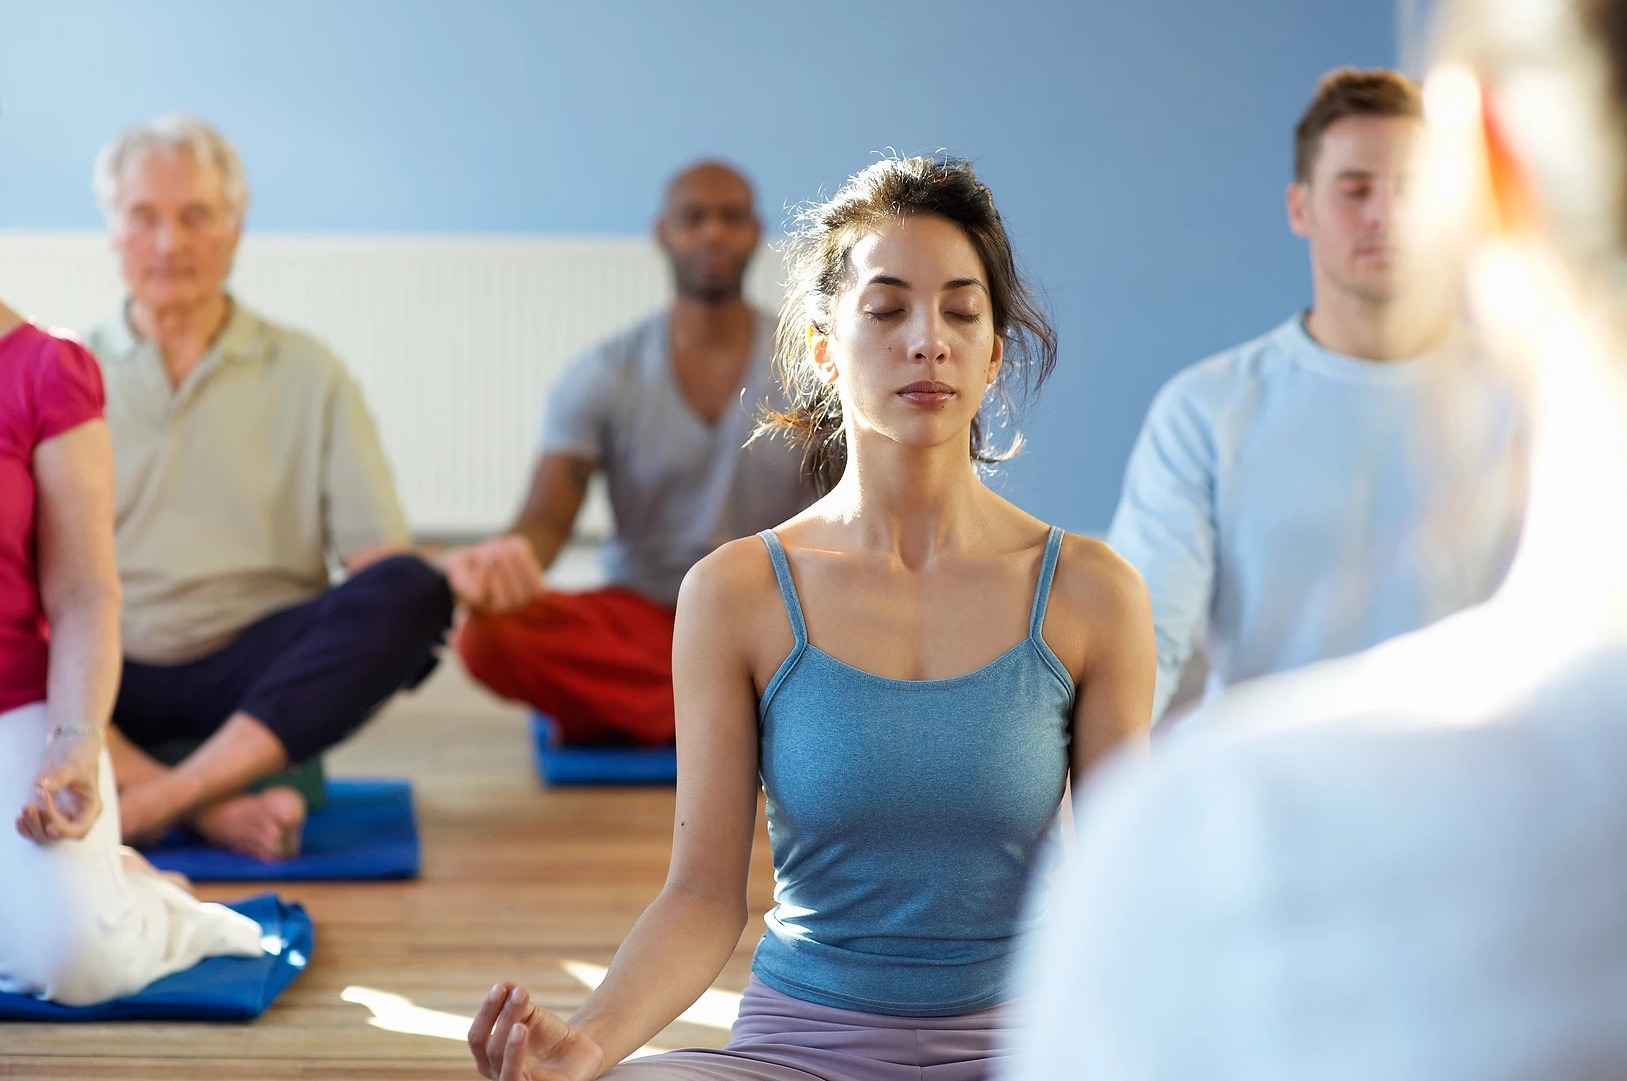 Exercise, Mindfulness, and Intention